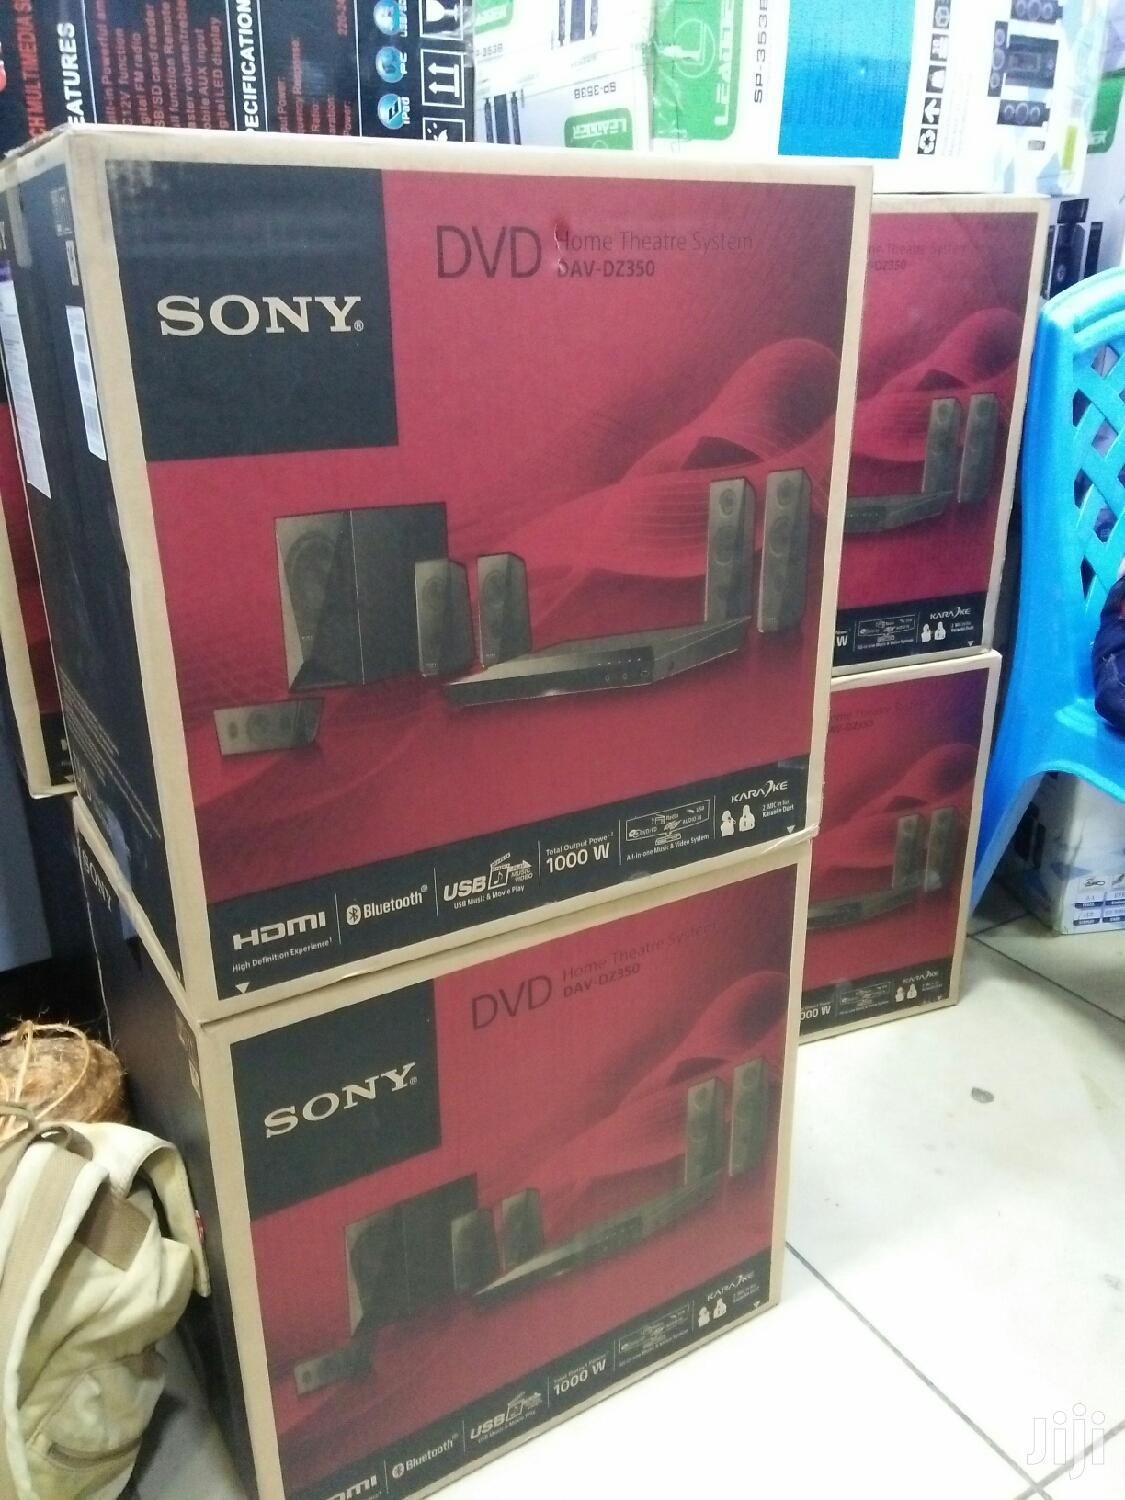 Sony Dz350 Home Theater System